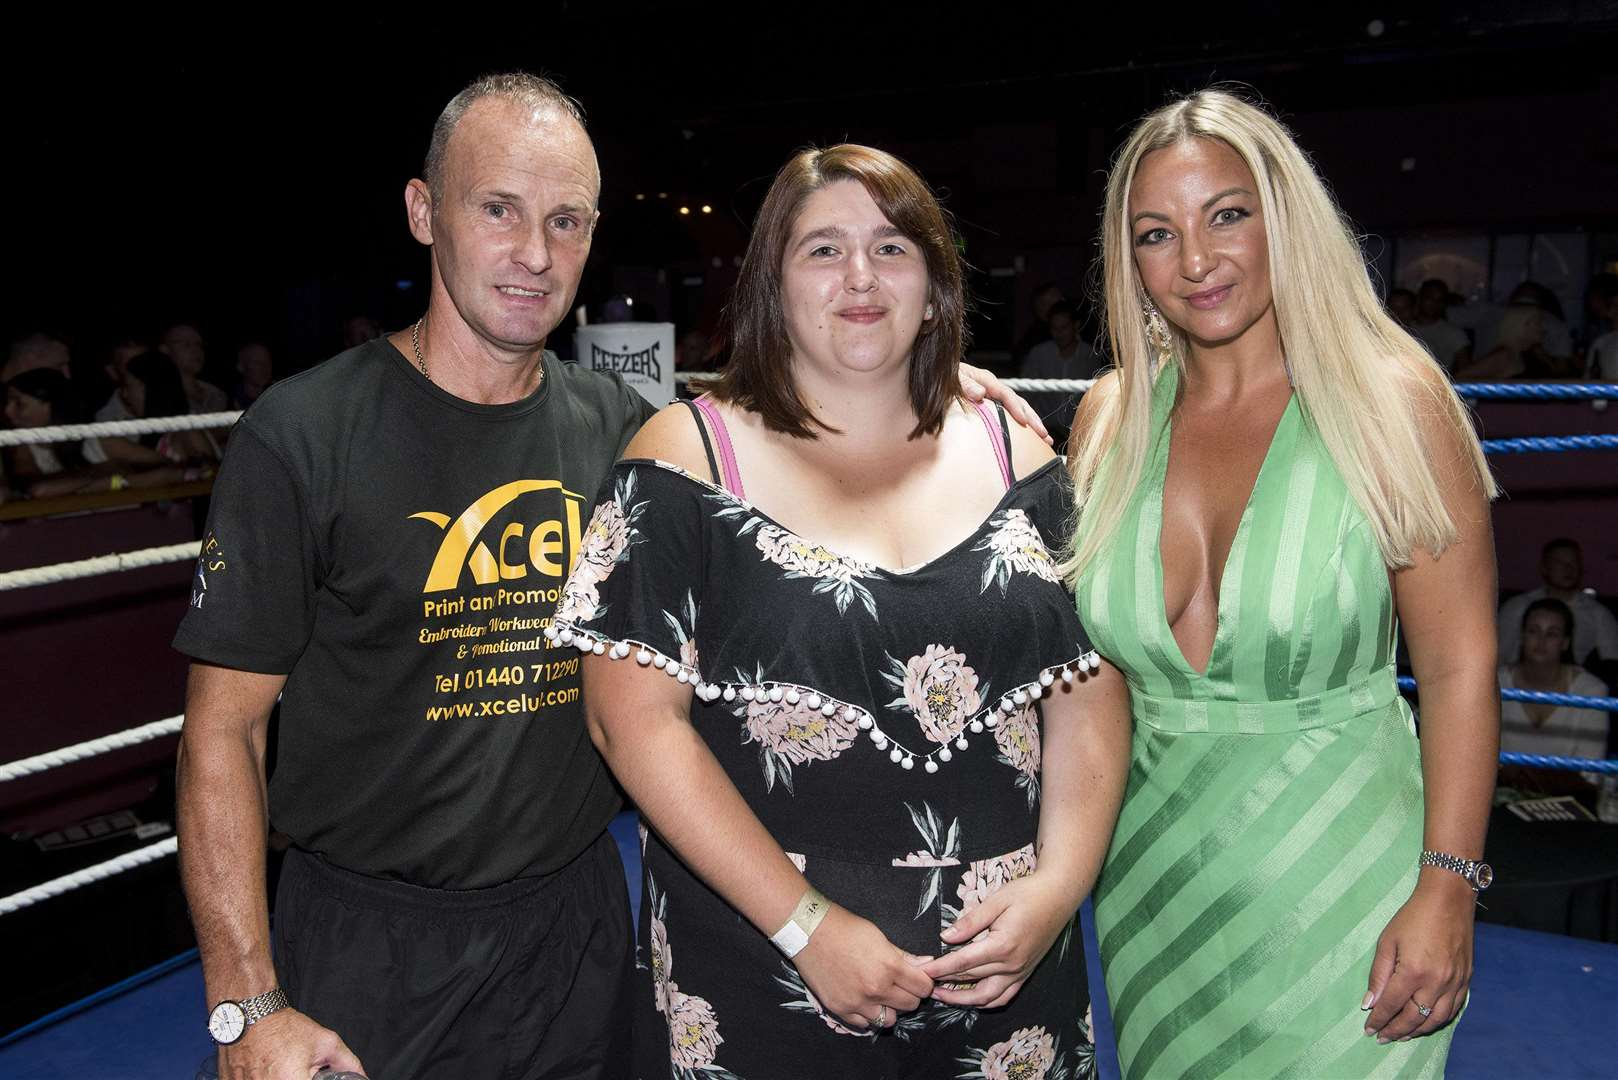 Rebecca McGrath, centre, is pictured at the fight night with Eddie Guest and co-promoter Becky Ross